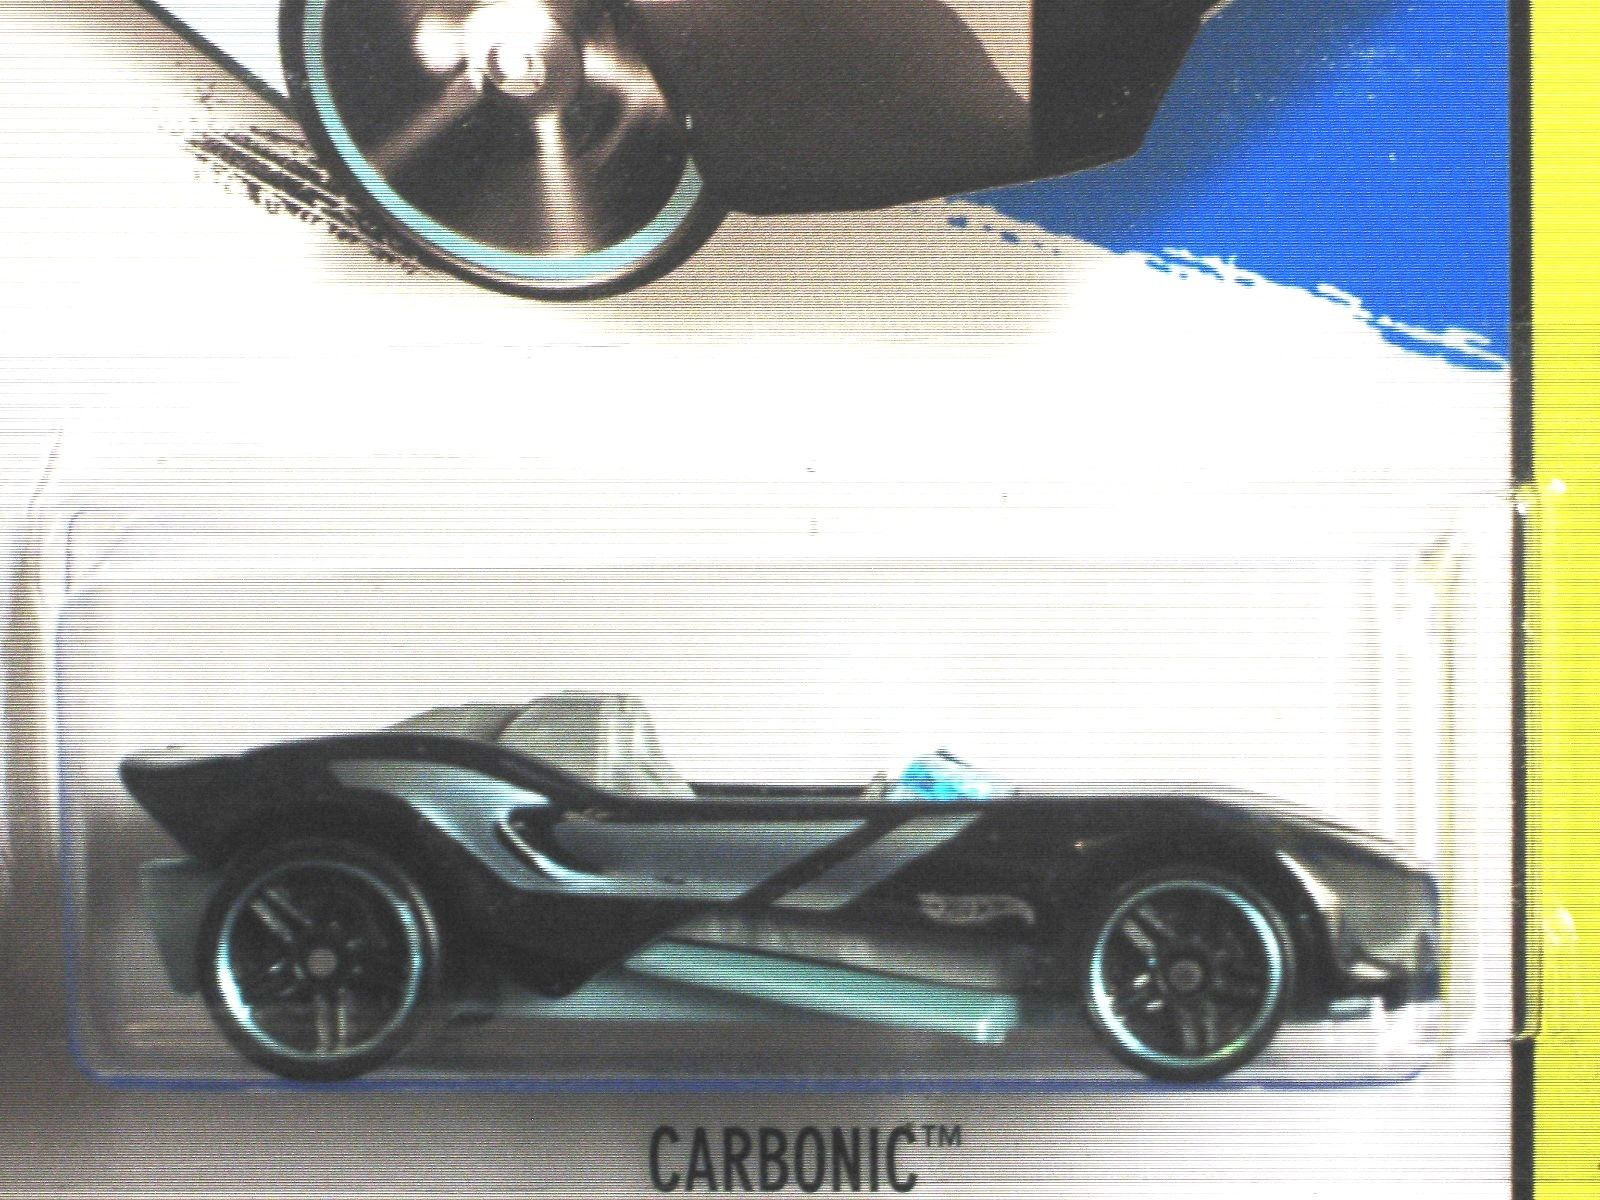 Carbonic >> Image Carbonic Jpg Hot Wheels Wiki Fandom Powered By Wikia